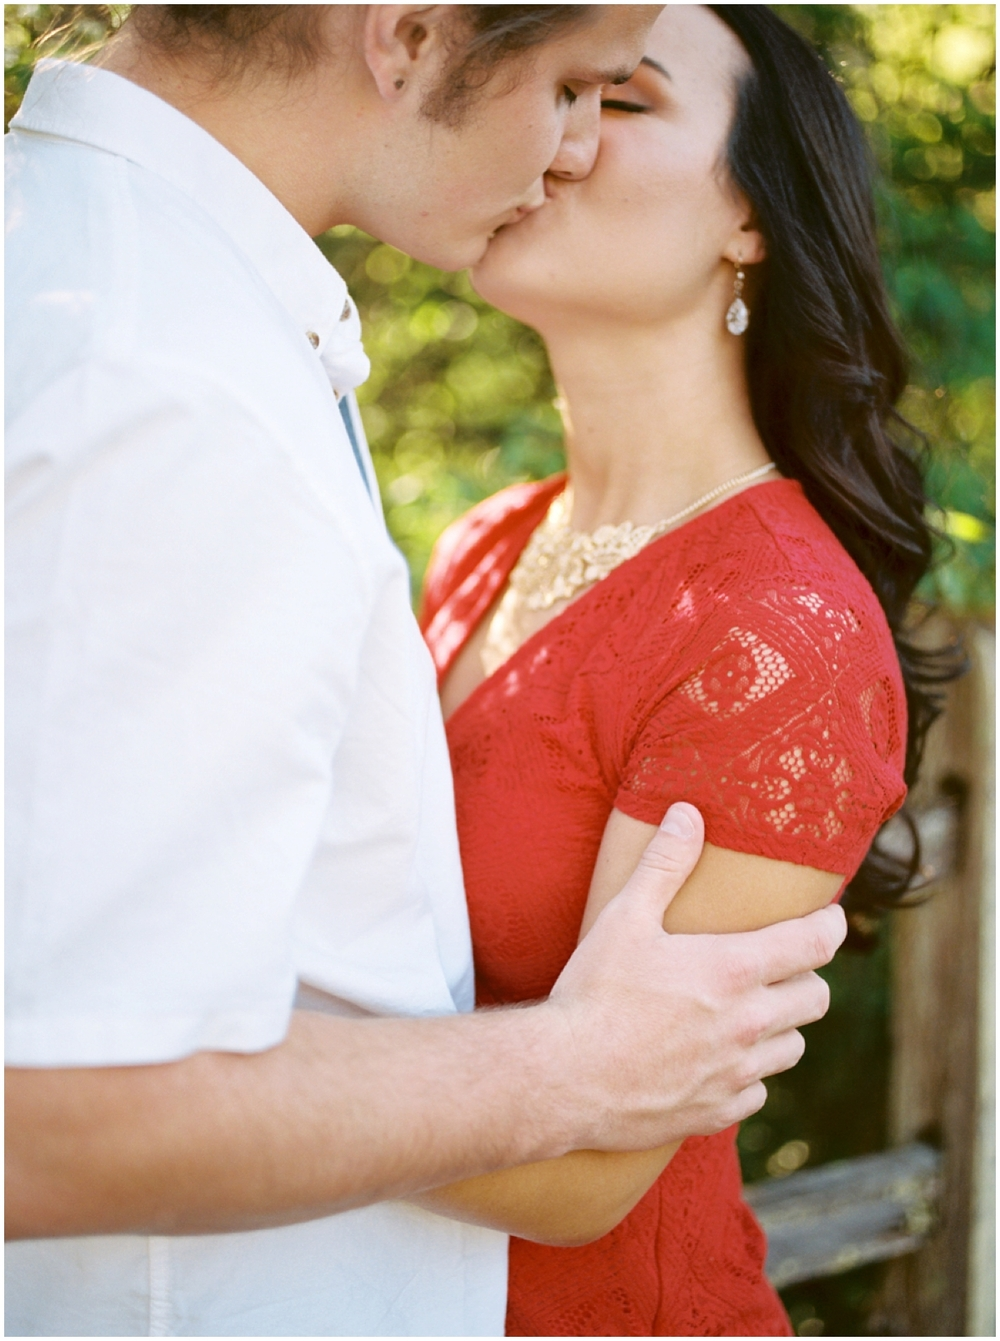 Abigail_Malone_Daras_Garden_Engagement_Film_Photography_KNoxville-20.jpg